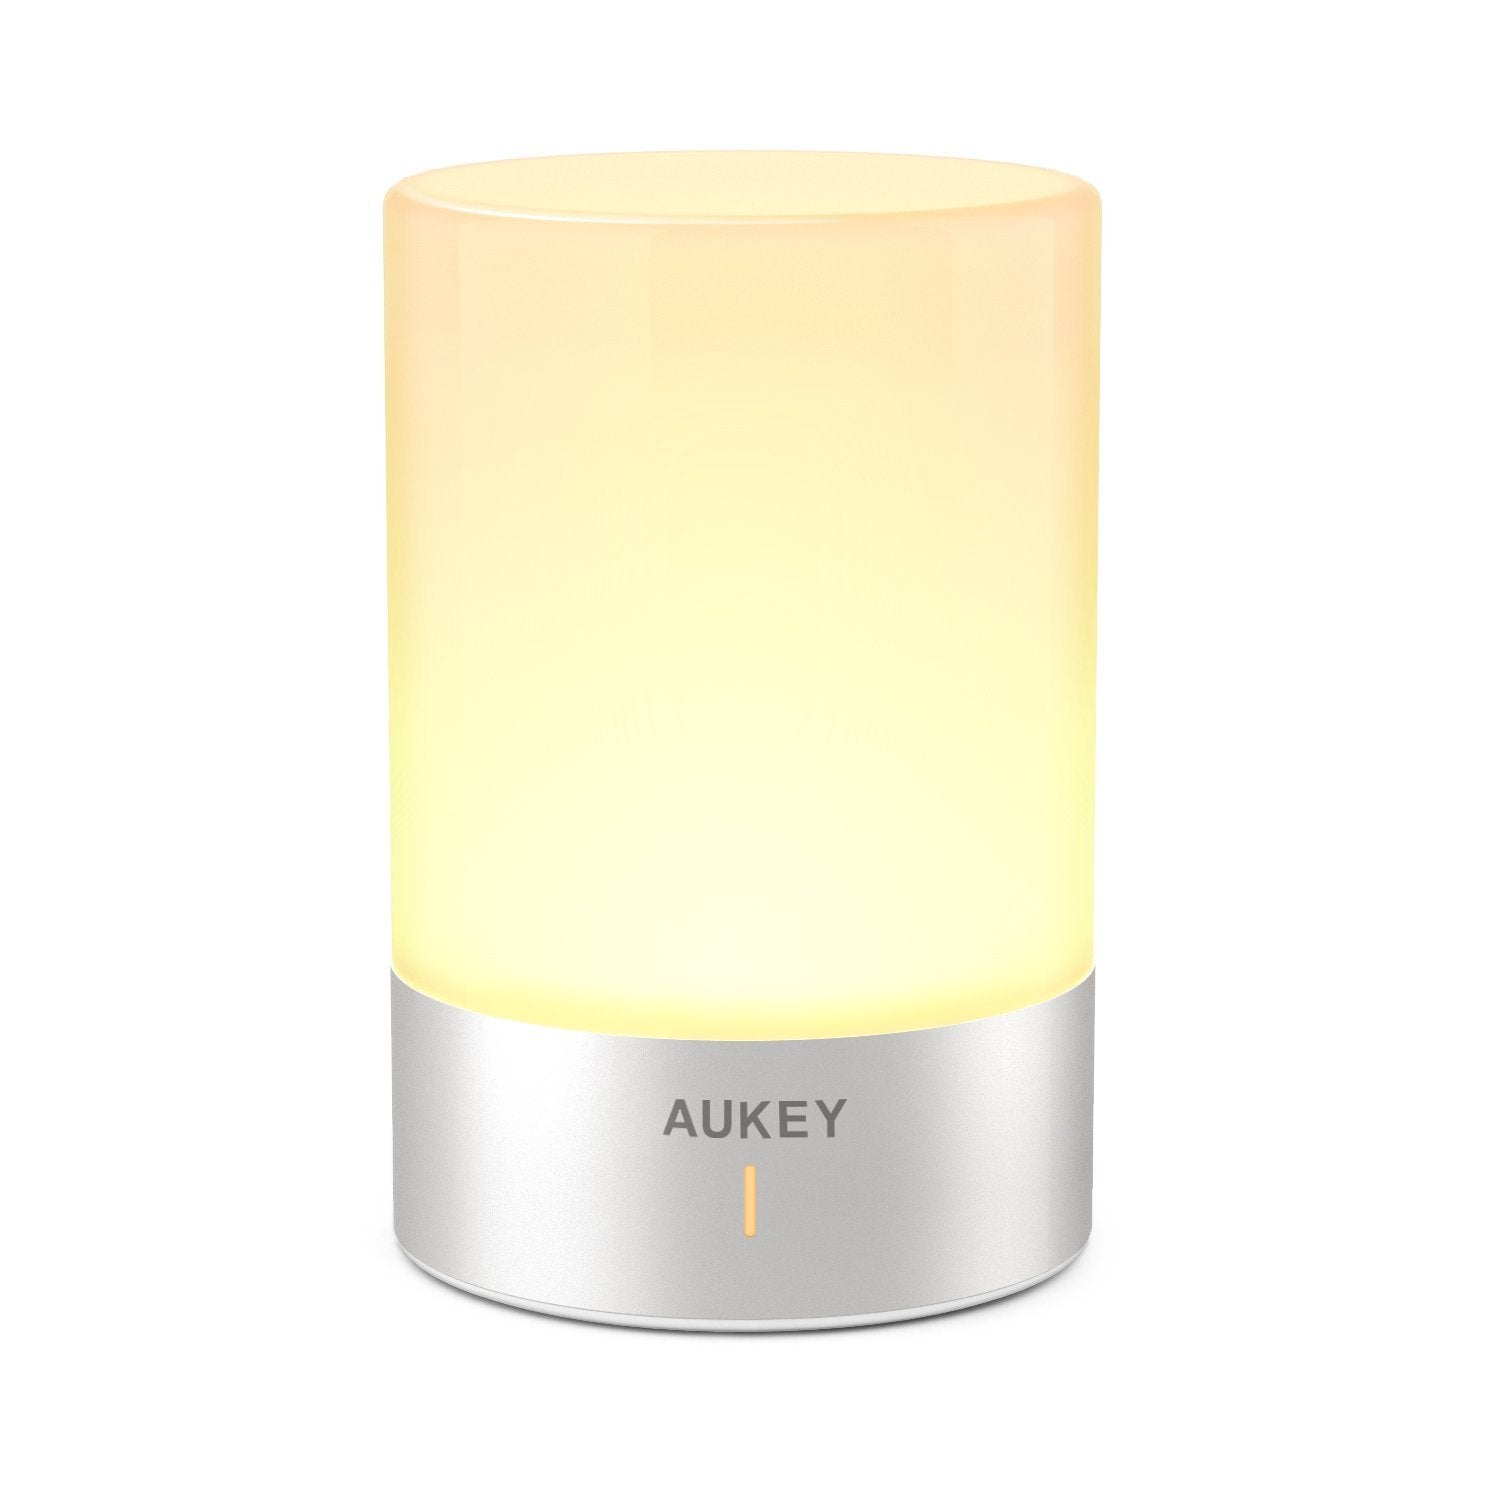 AUKEY LT-ST21 Mini Touch Control LED Desk Lamp - Aukey Malaysia Official Store